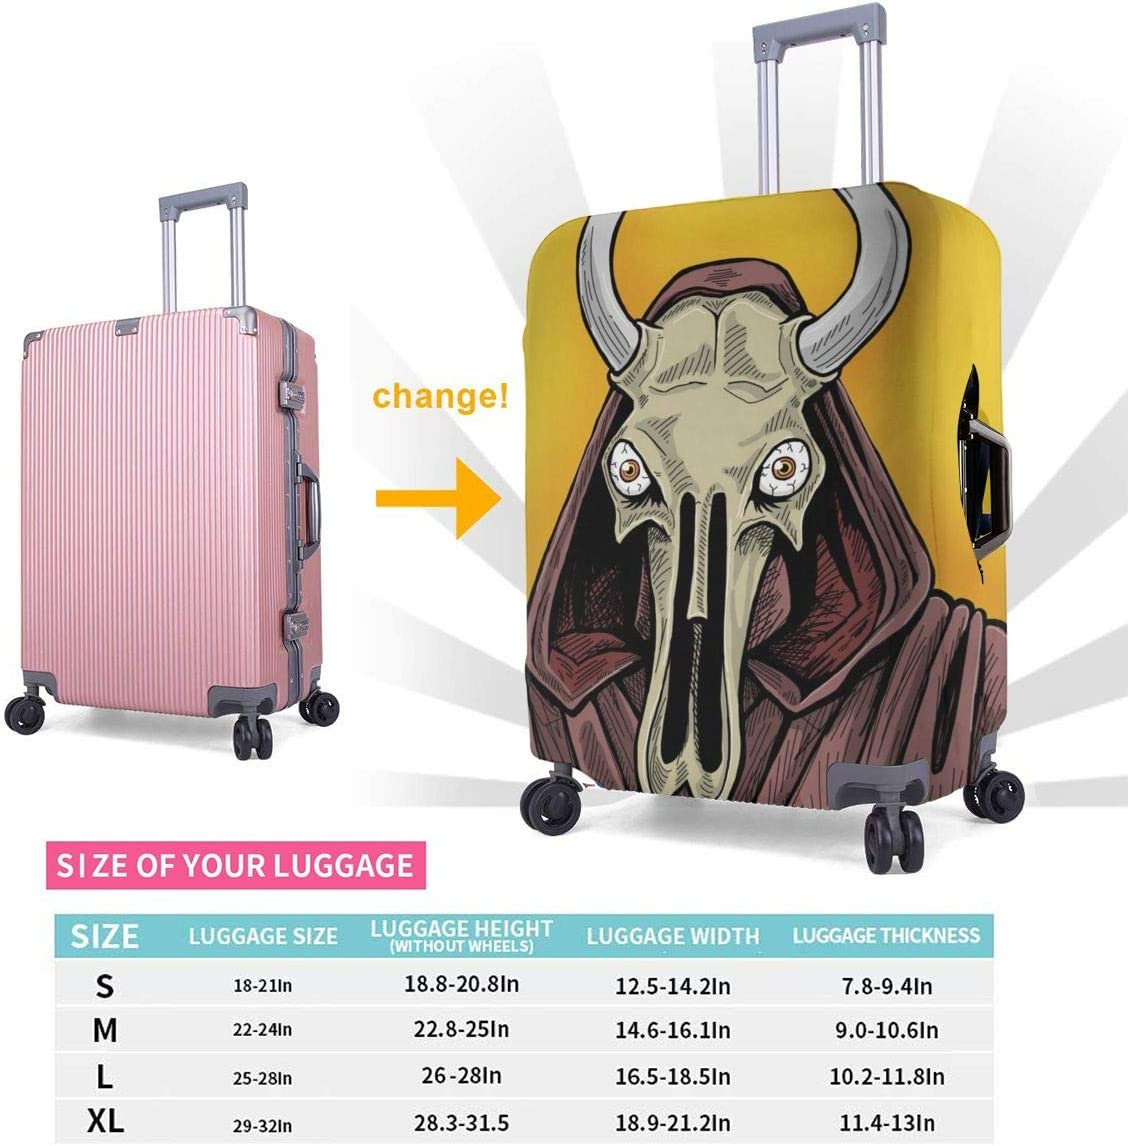 Cow Skull Cleric Elastic Travel Luggage Cover,Double Print Fashion Washable Suitcase Protective Cover Fits 18-32inch Luggage